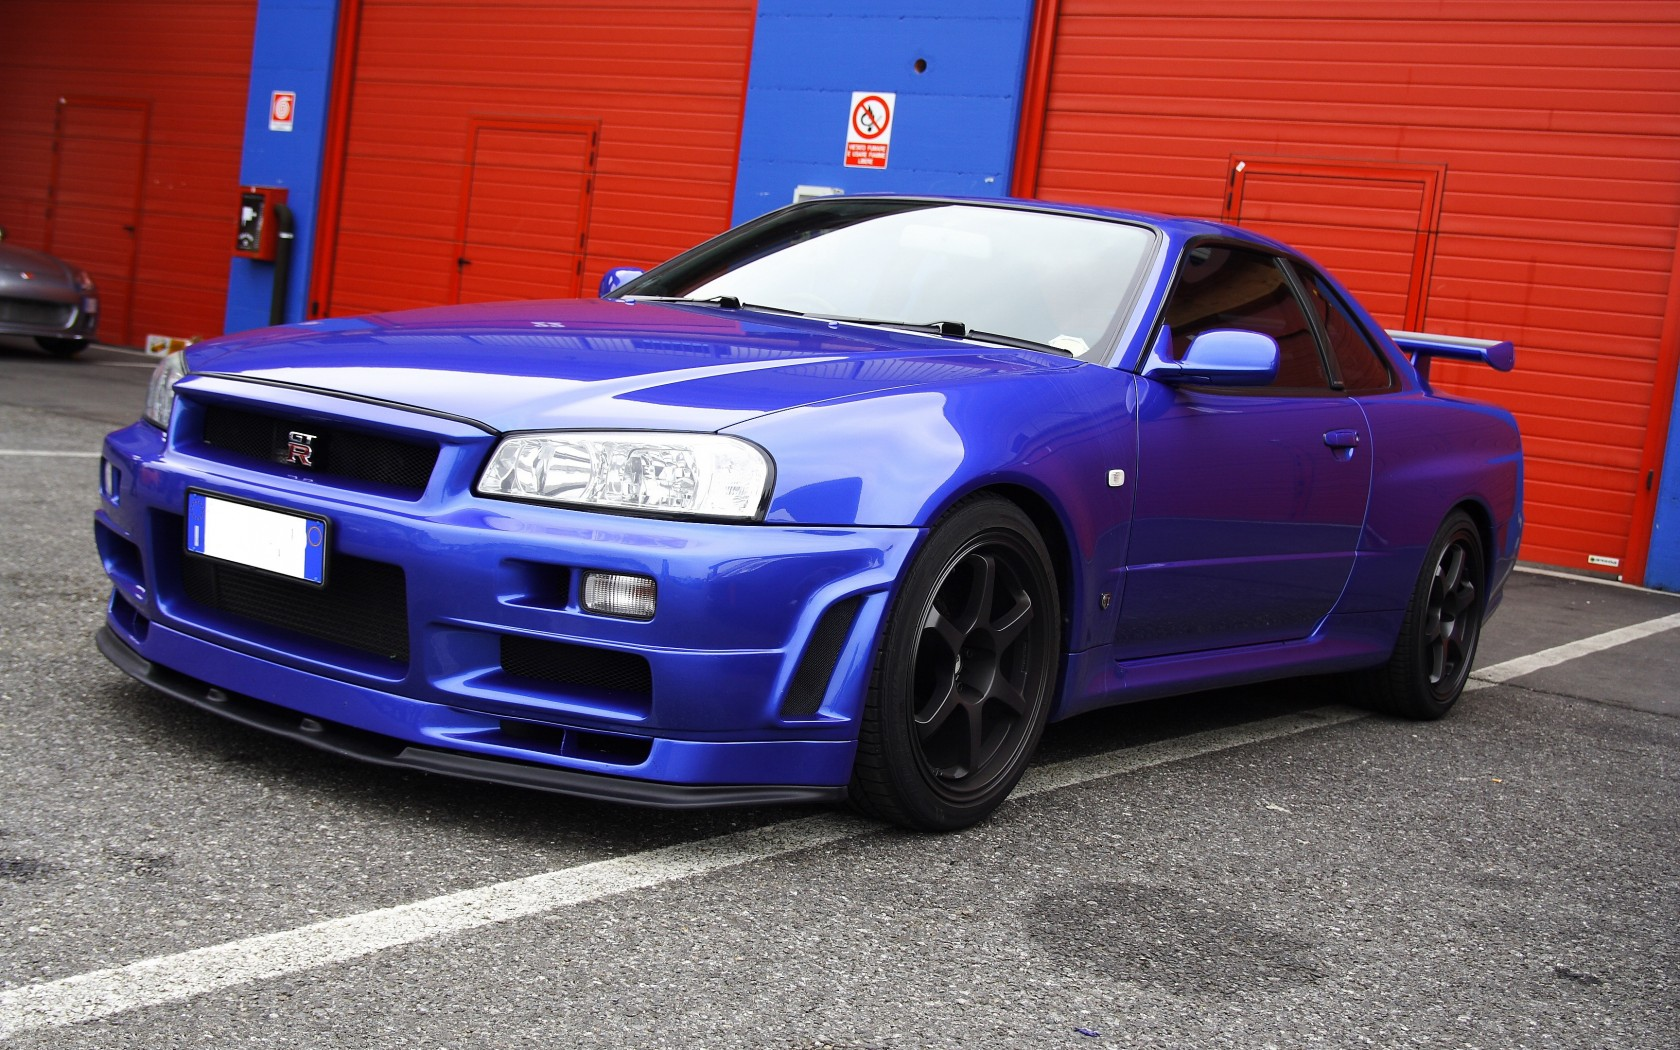 Nissan Skyline Wallpaper and Background Image   1680x1050 ...